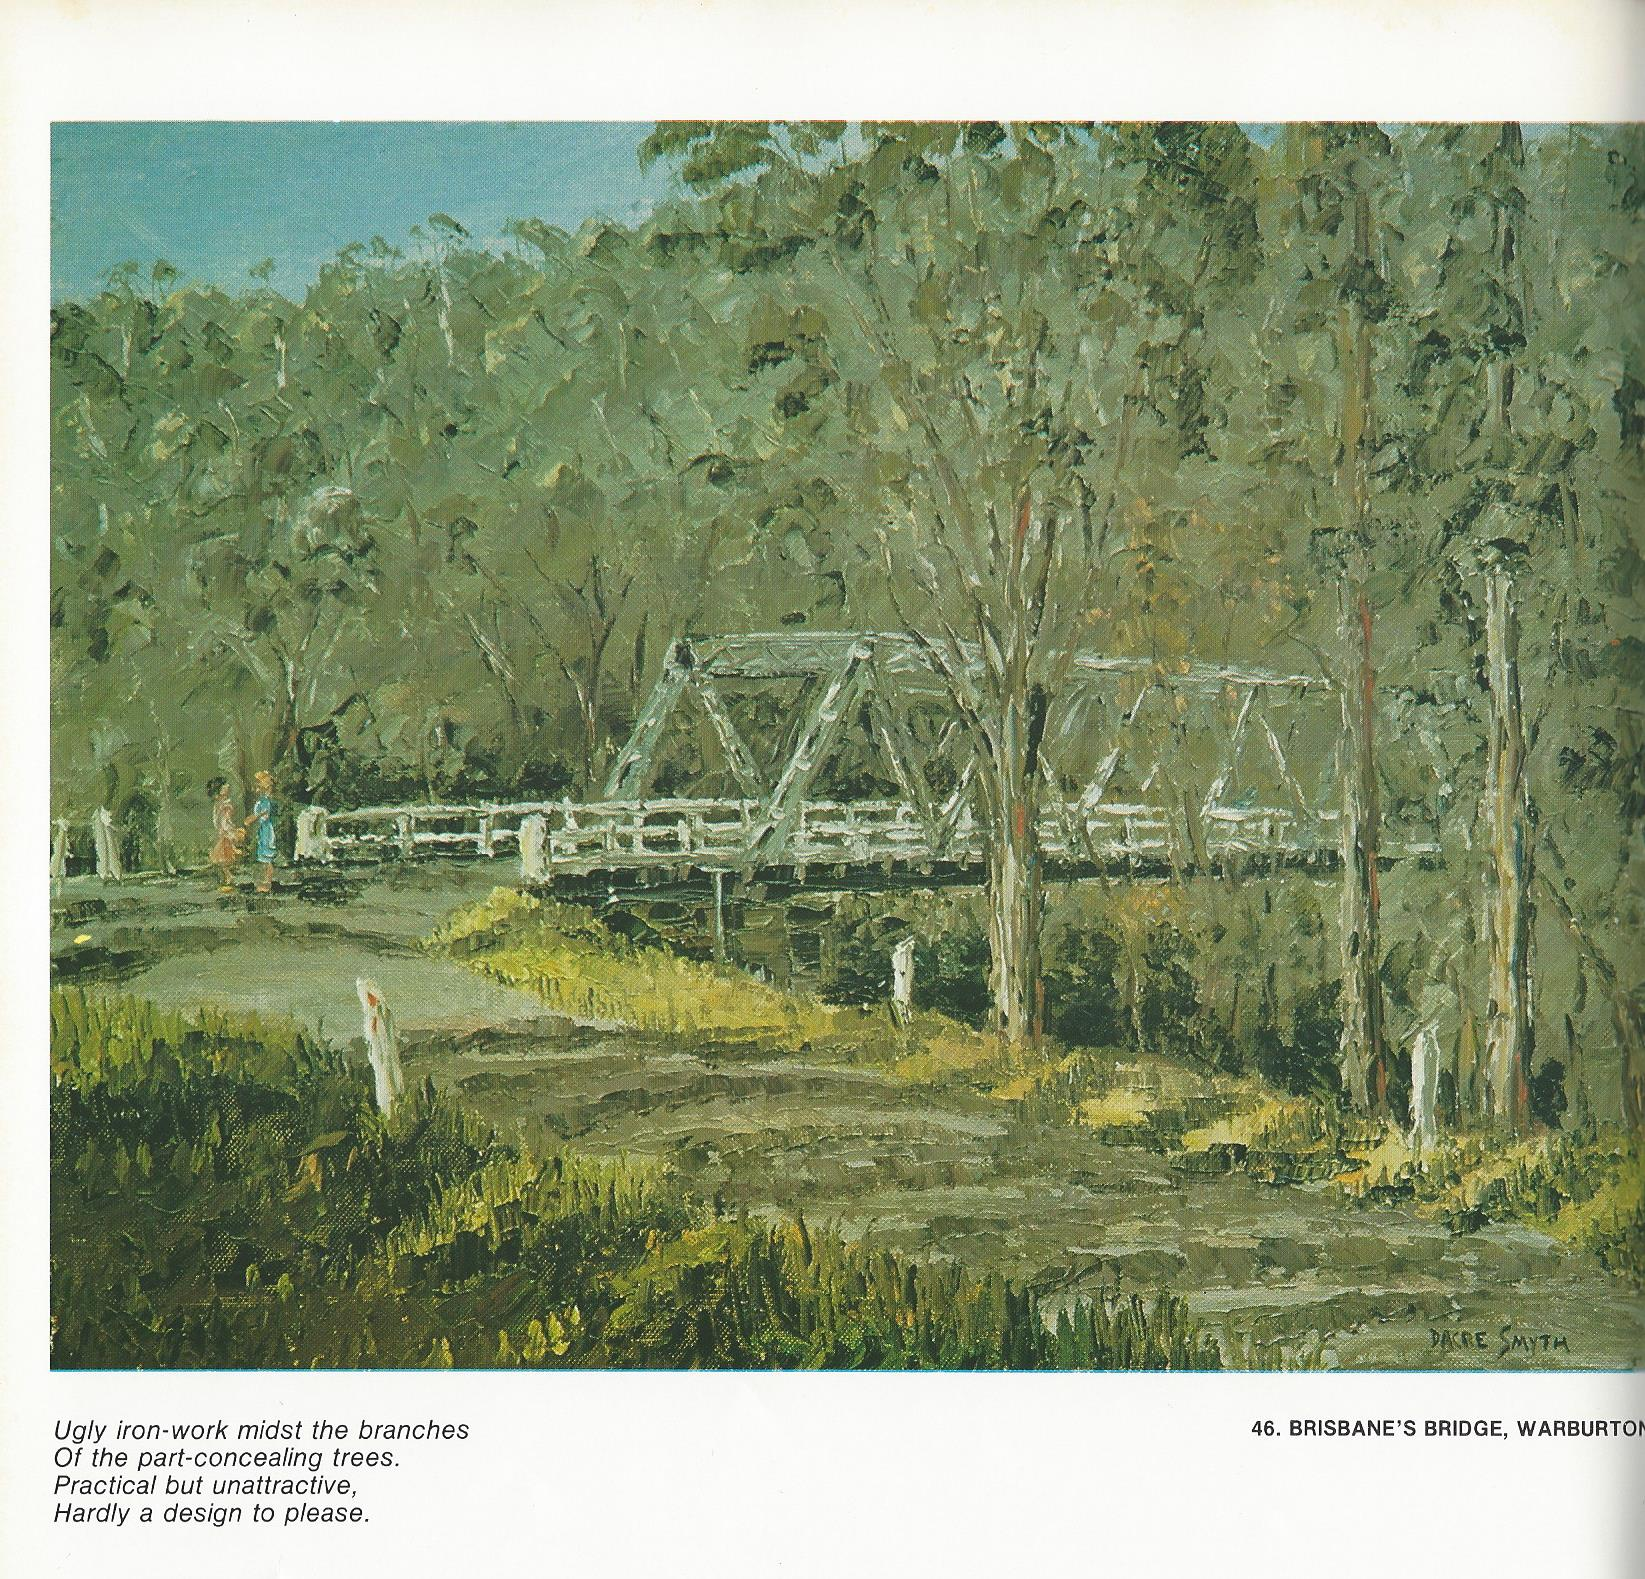 46. Brisbane's Bridge, Warburton